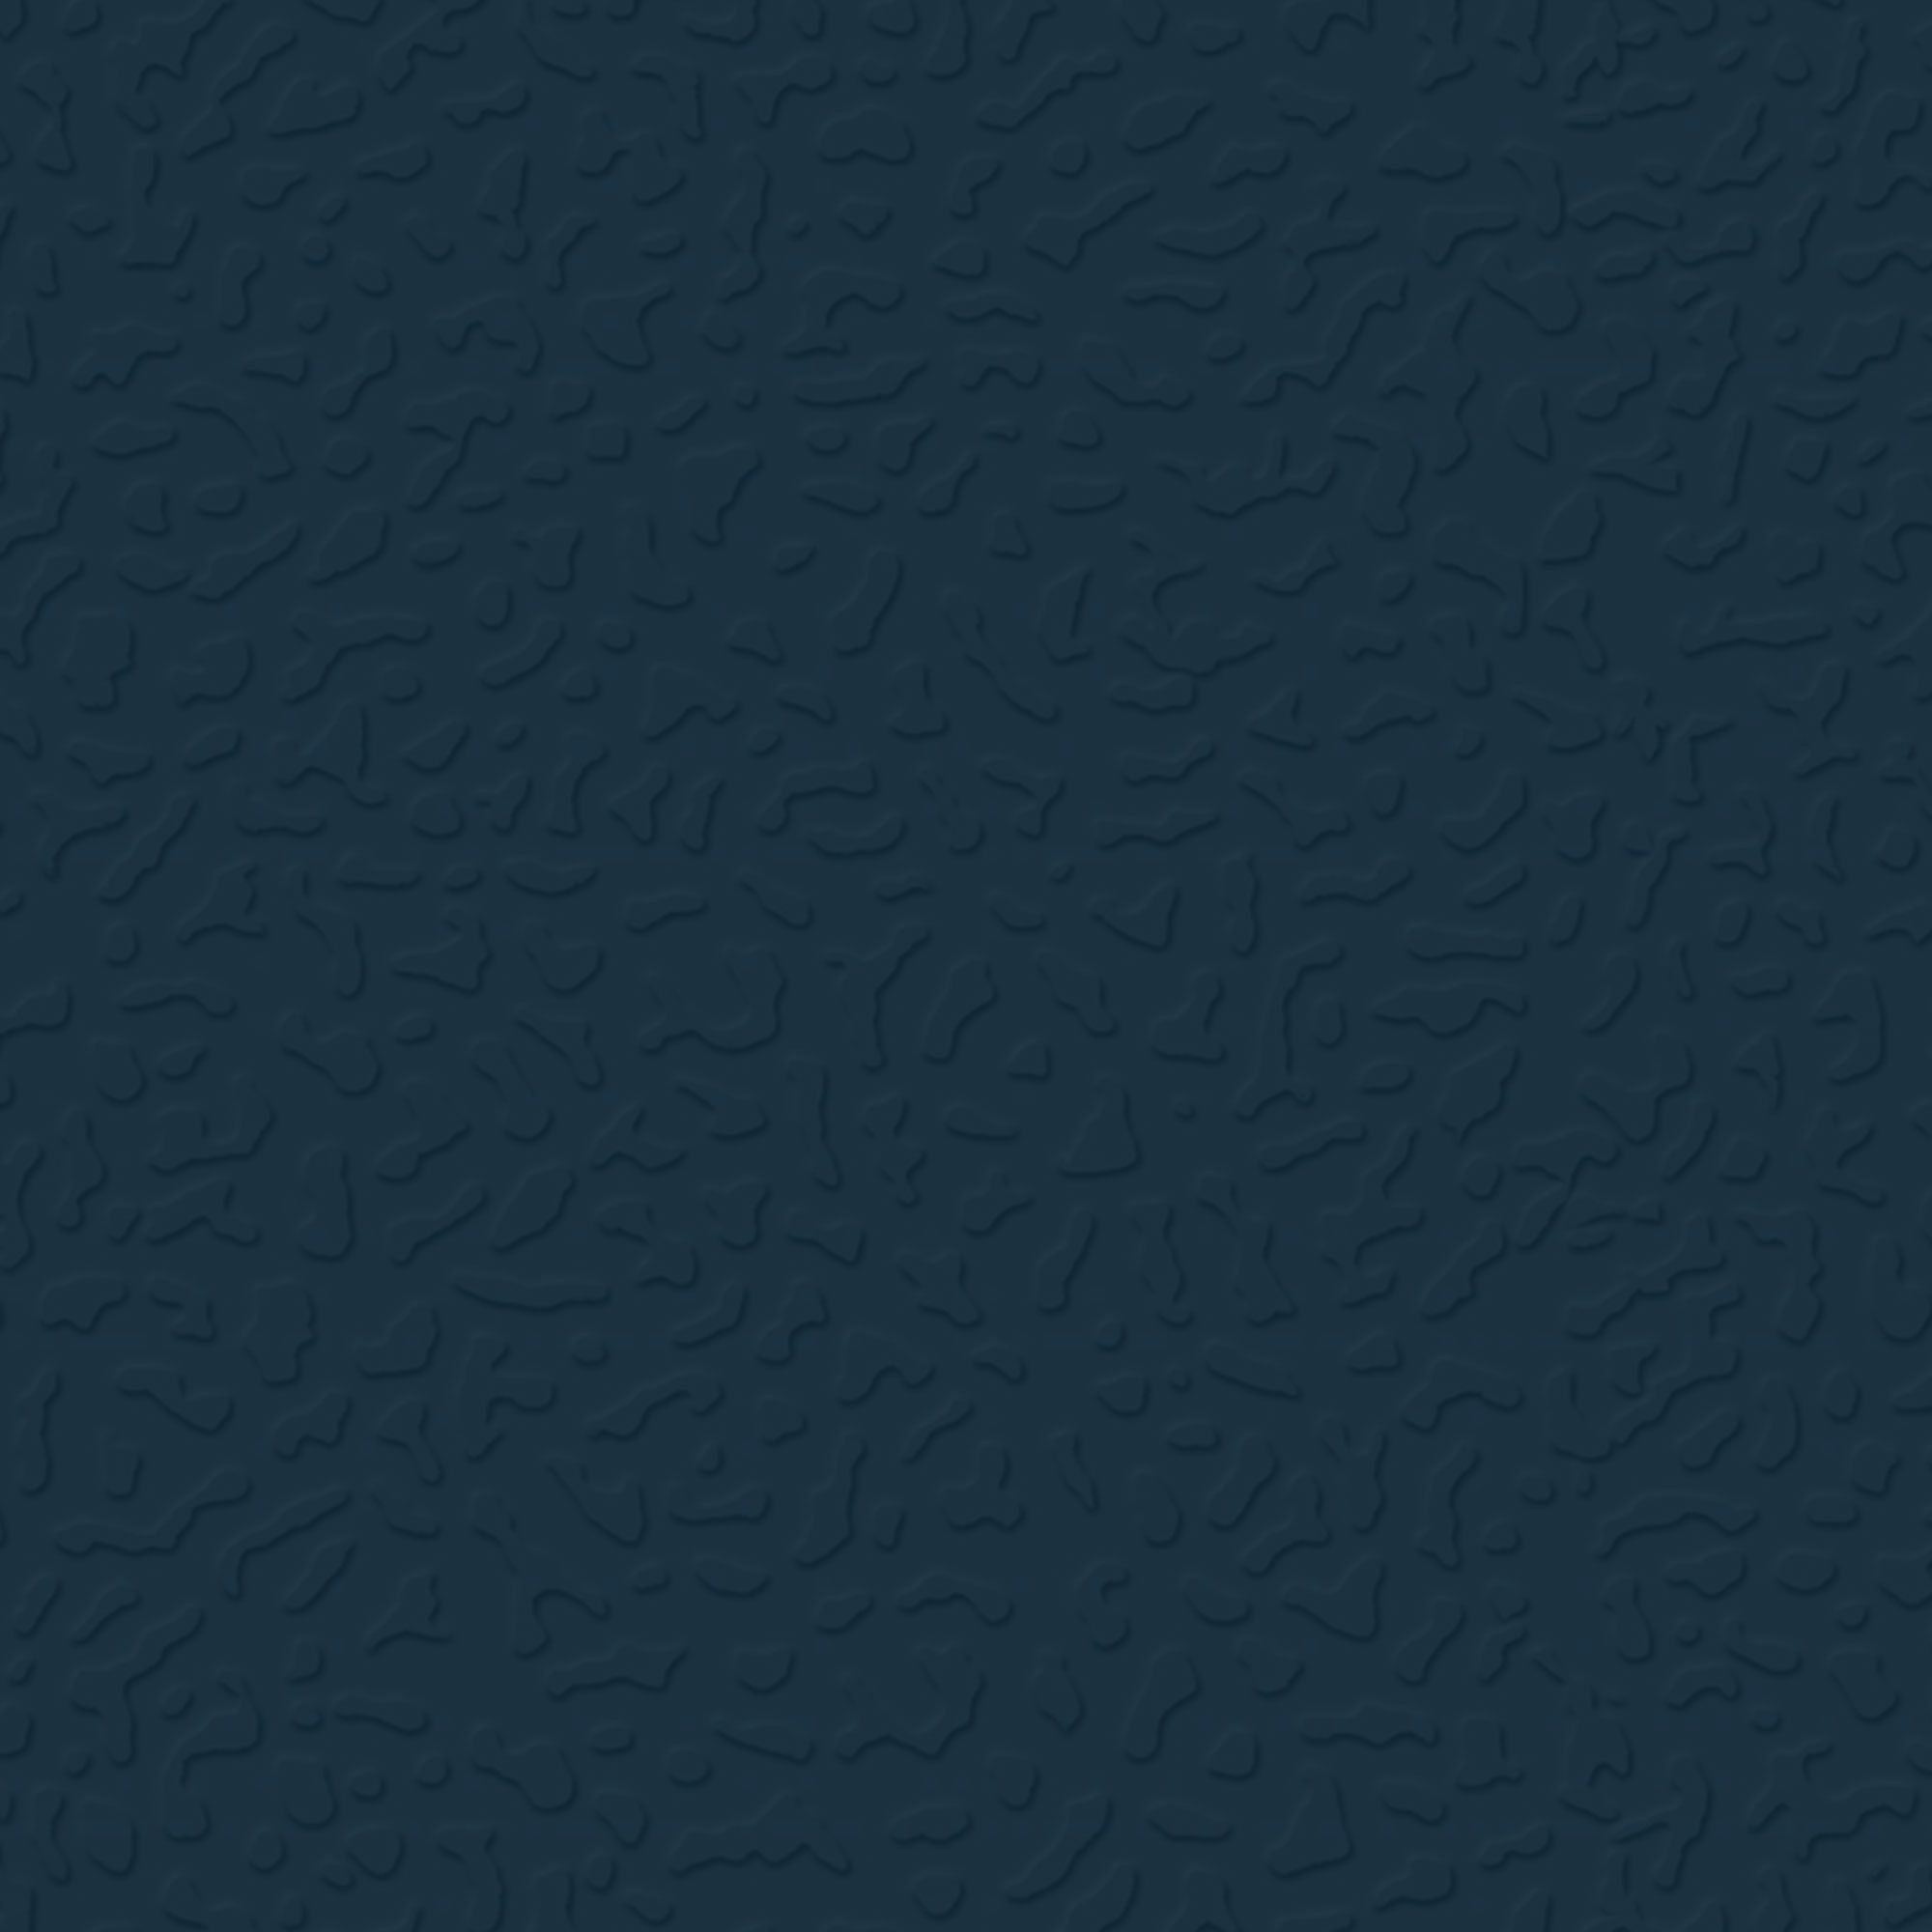 Roppe Rubber Tile 900 - Textured Design (993) Deep Navy LB996139